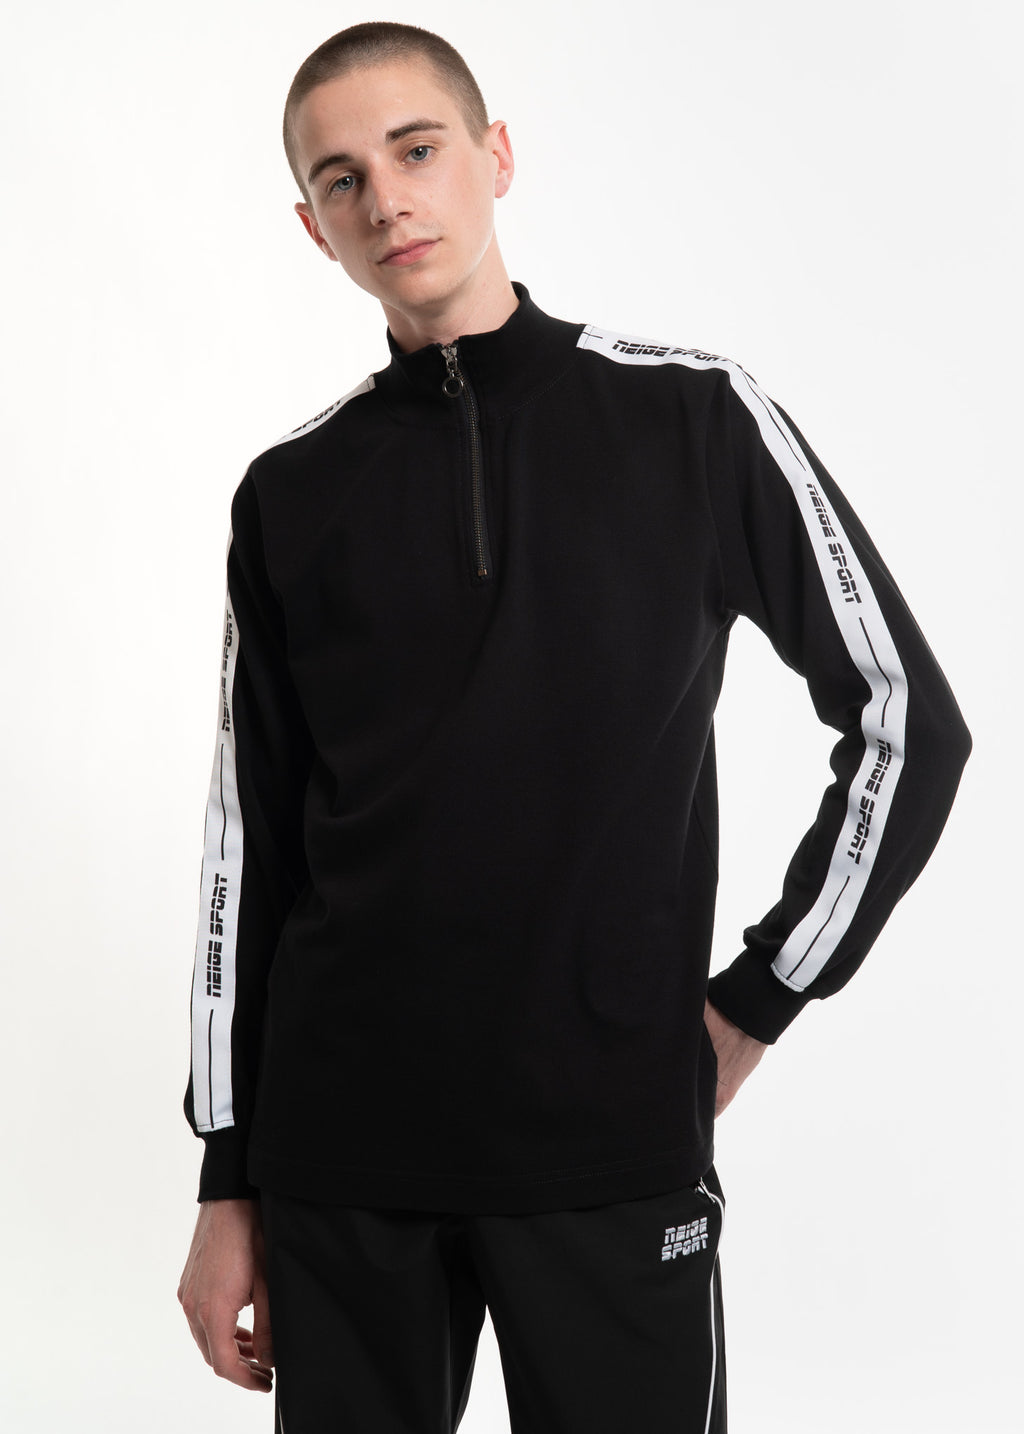 Neige, Black Tape Turtle Neck, 017 Shop